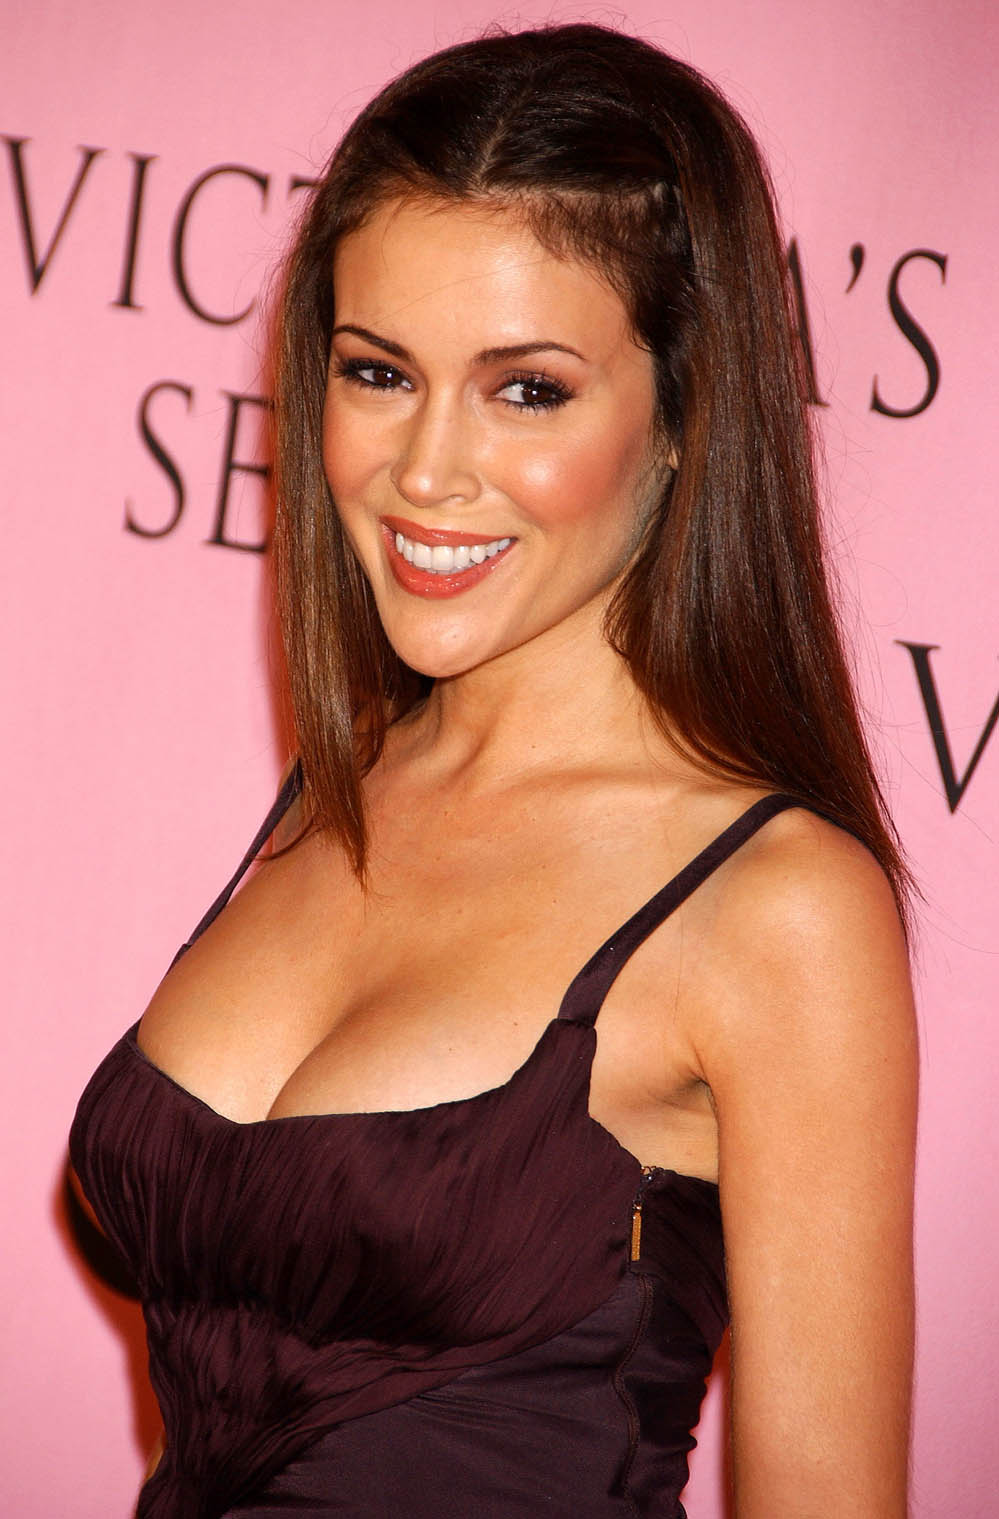 12 alyssa milano (wayne mcbean) - hottest nhl celebrity wags of all time